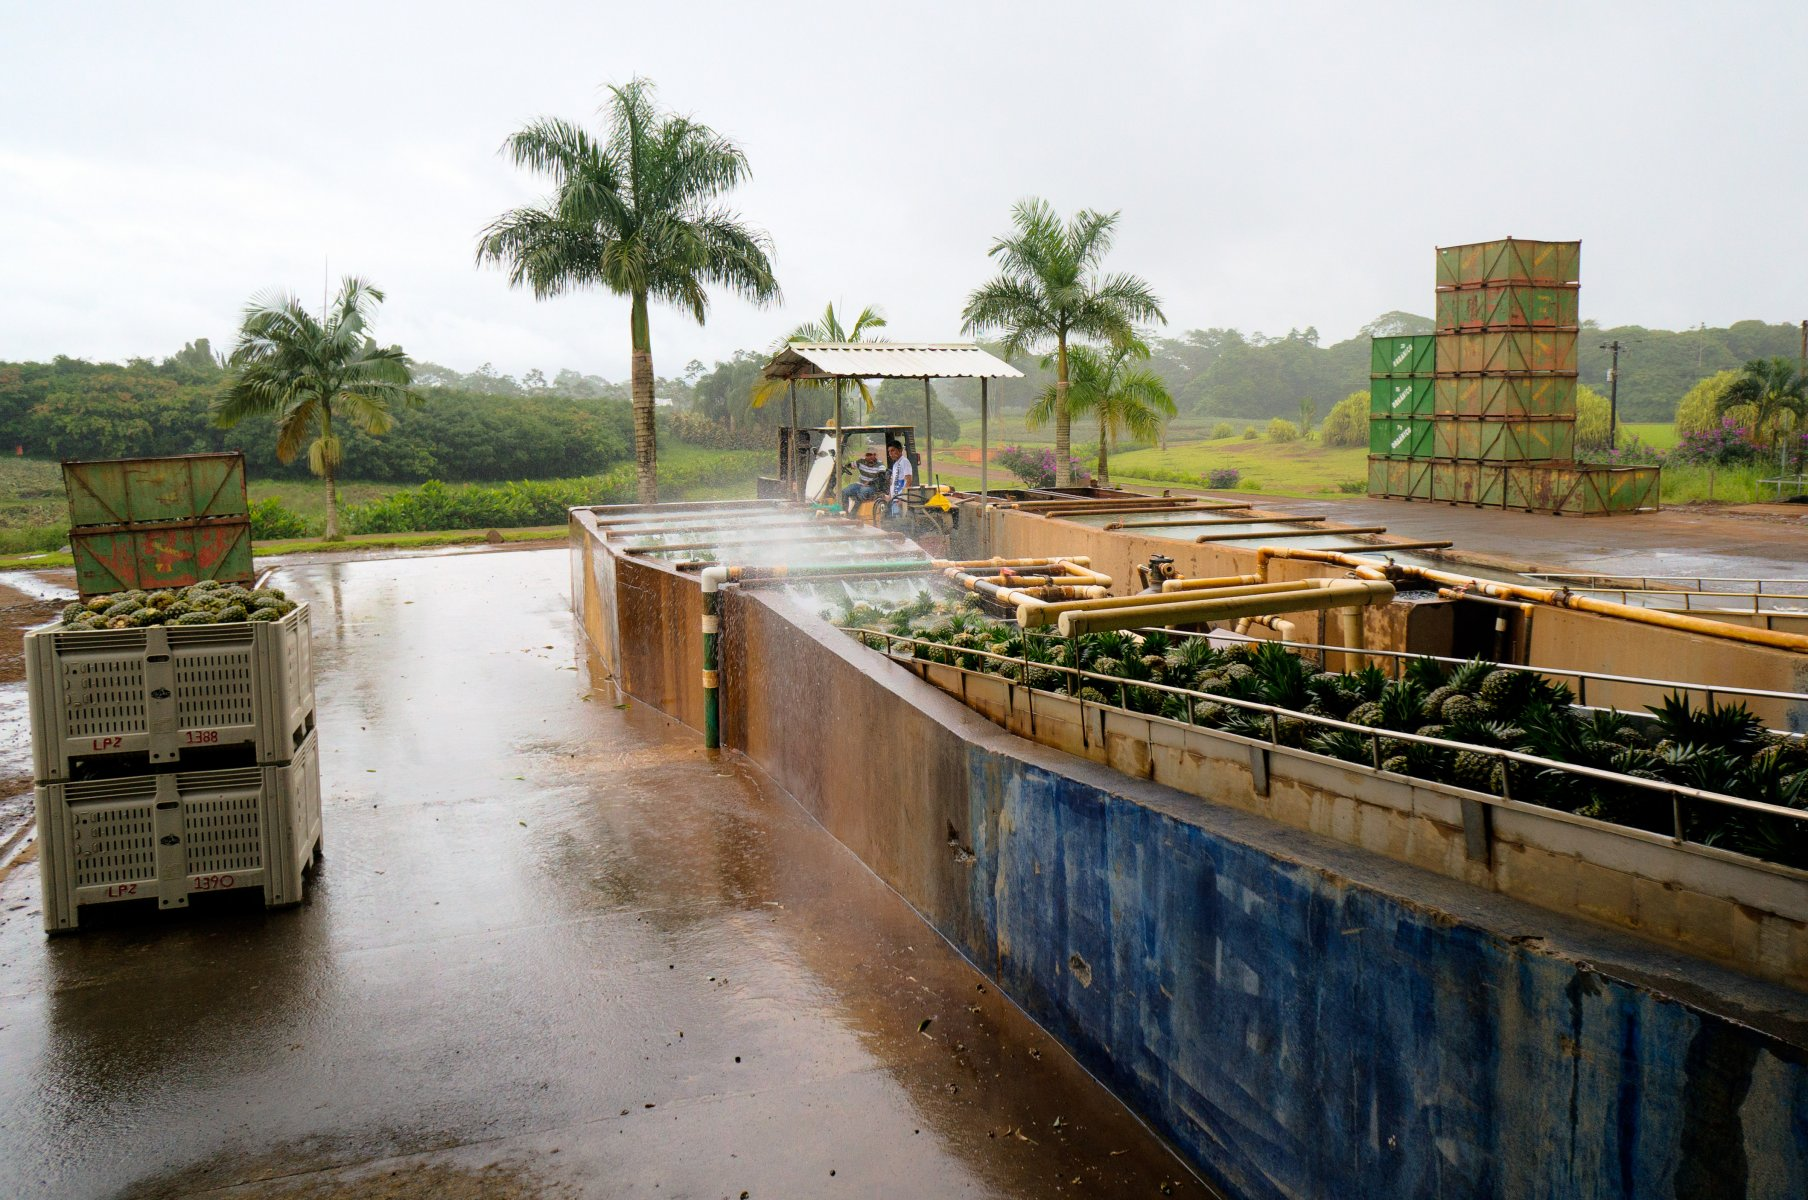 Workers spraying down fresh pineapples as they enter a processing facility.